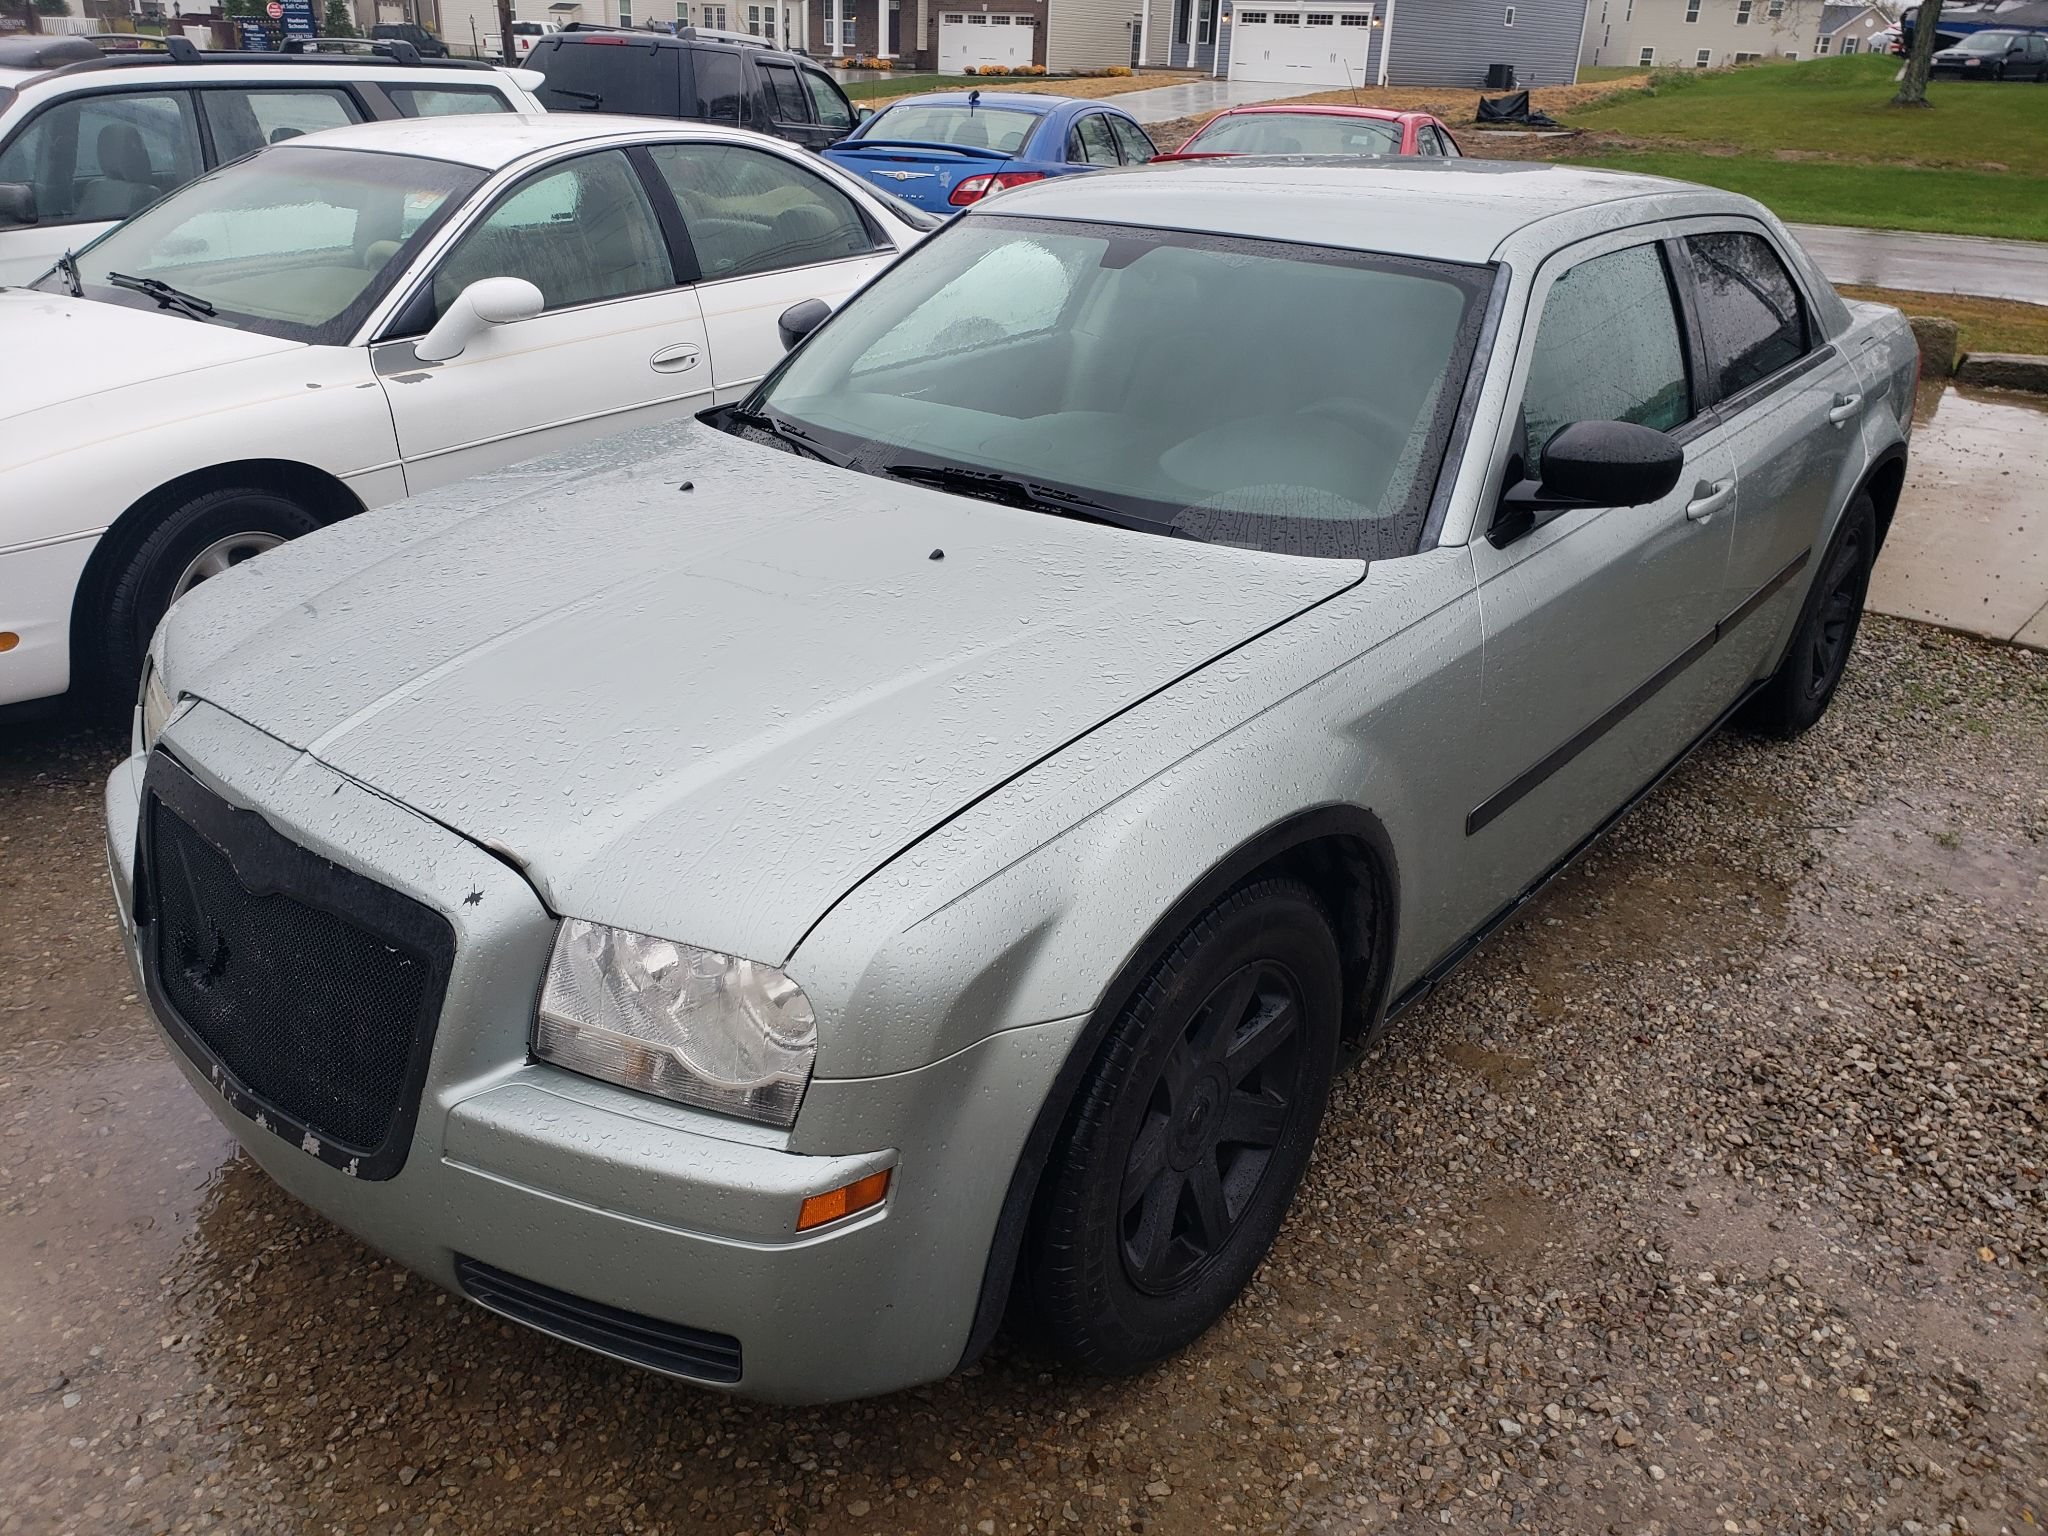 2006 Chrysler 300 for sale at Towpath Motors | Used Car Dealer in Peninsula Ohio